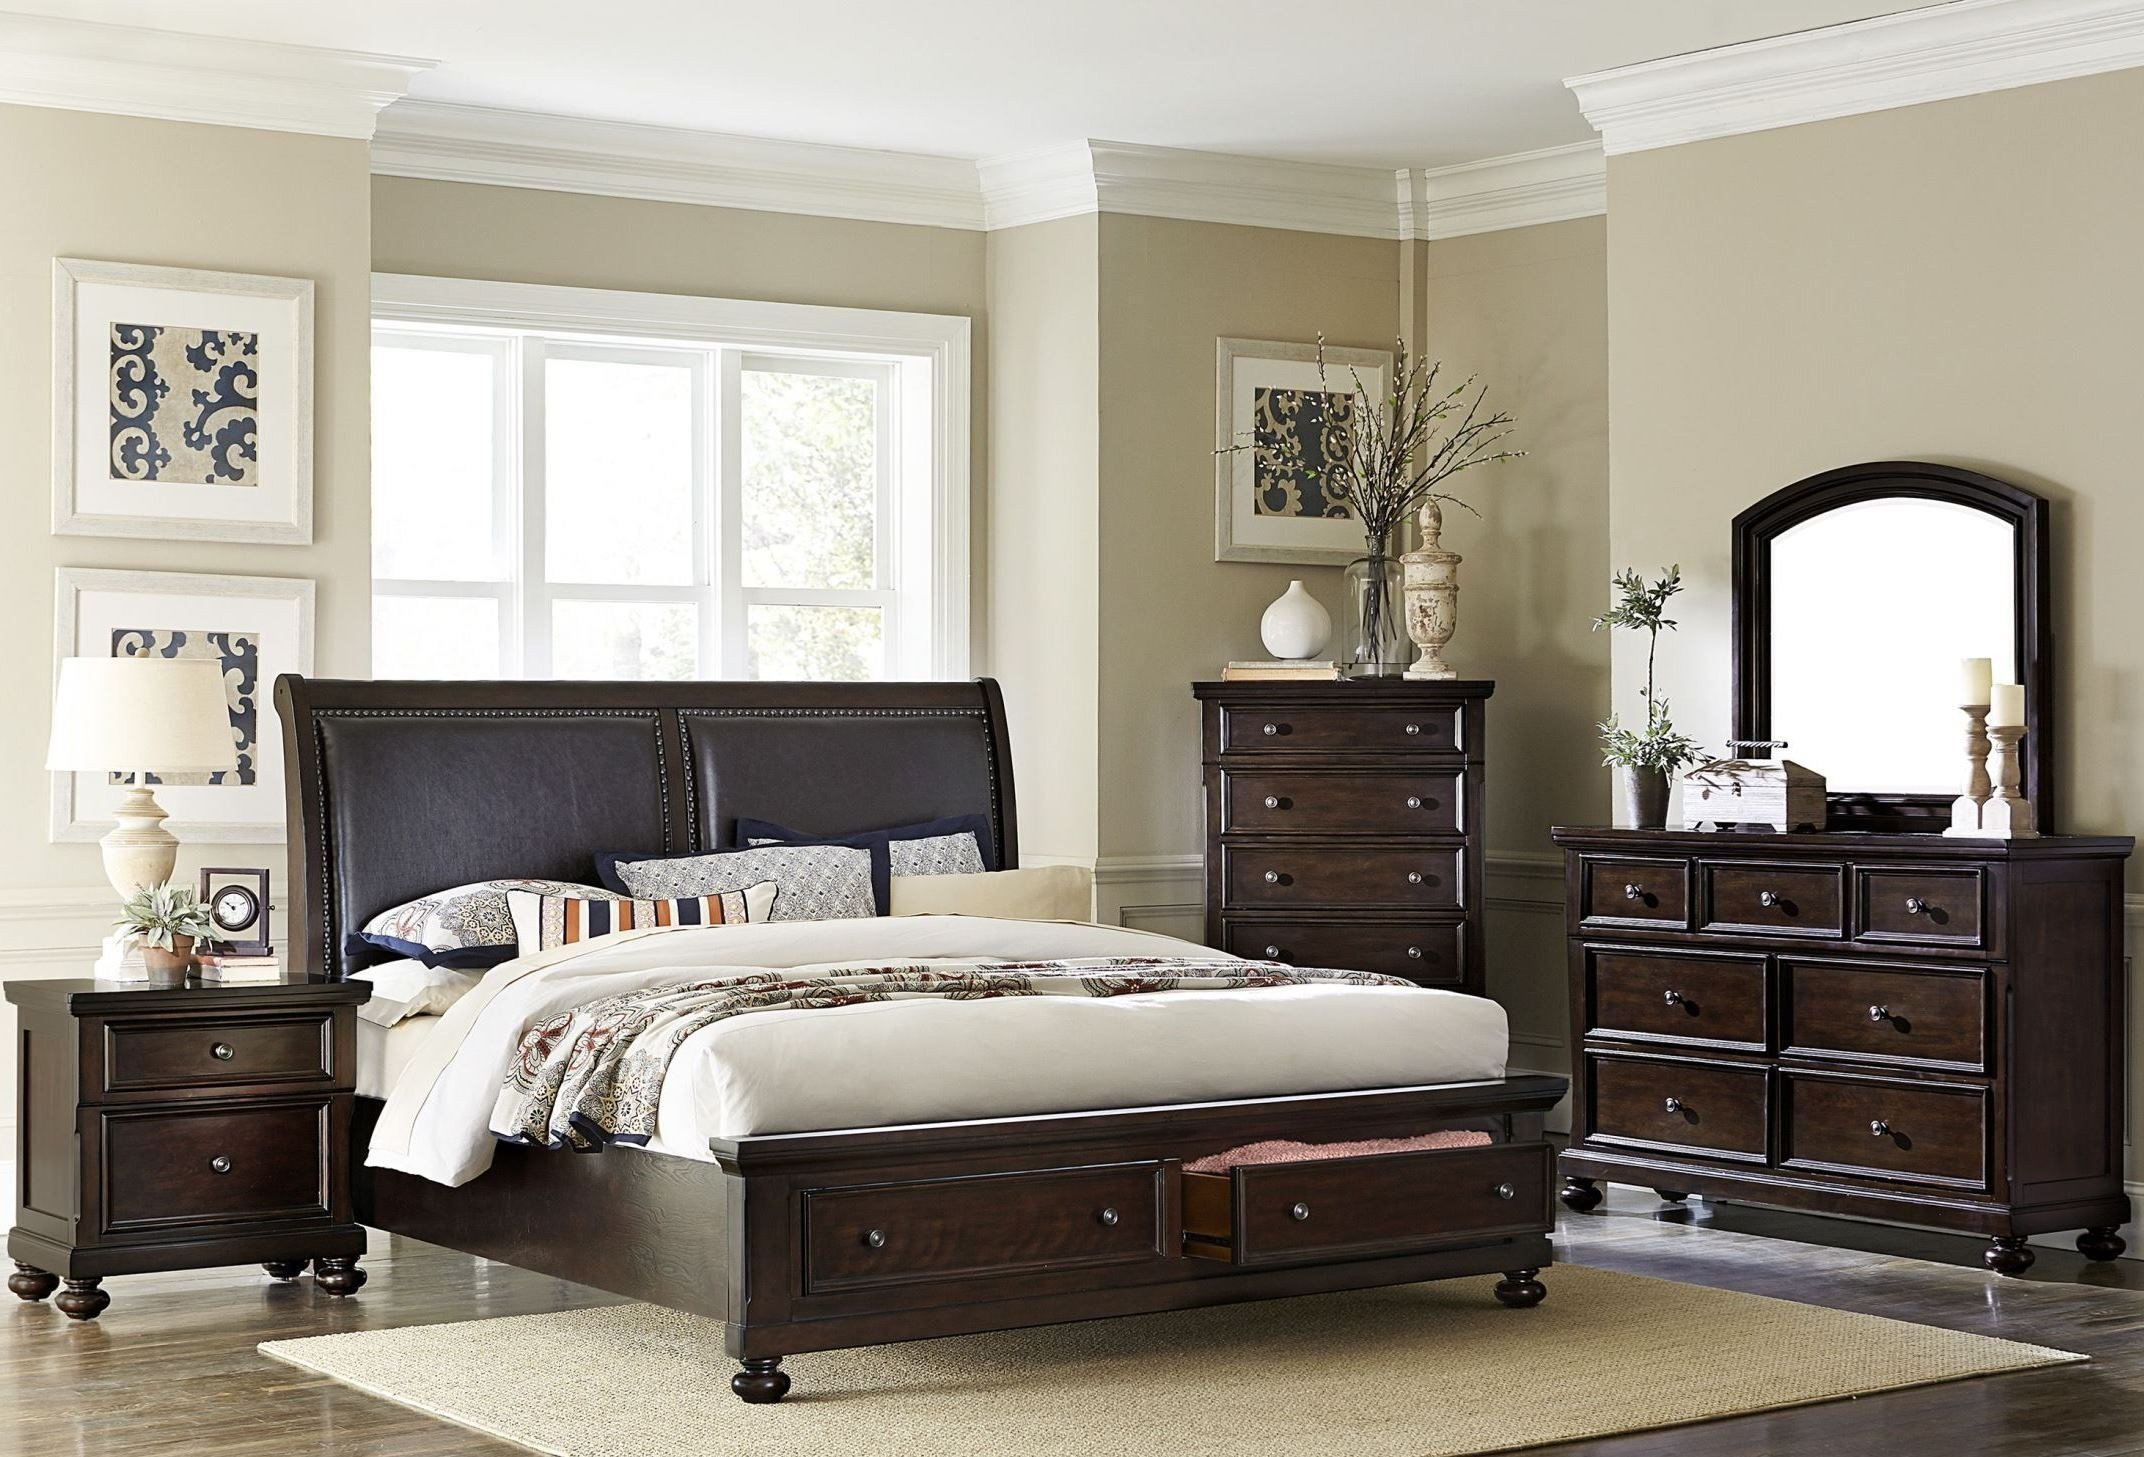 Best Faust Dark Cherry Storage Platform Bedroom Set From Homelegance 1834 1 Coleman Furniture With Pictures